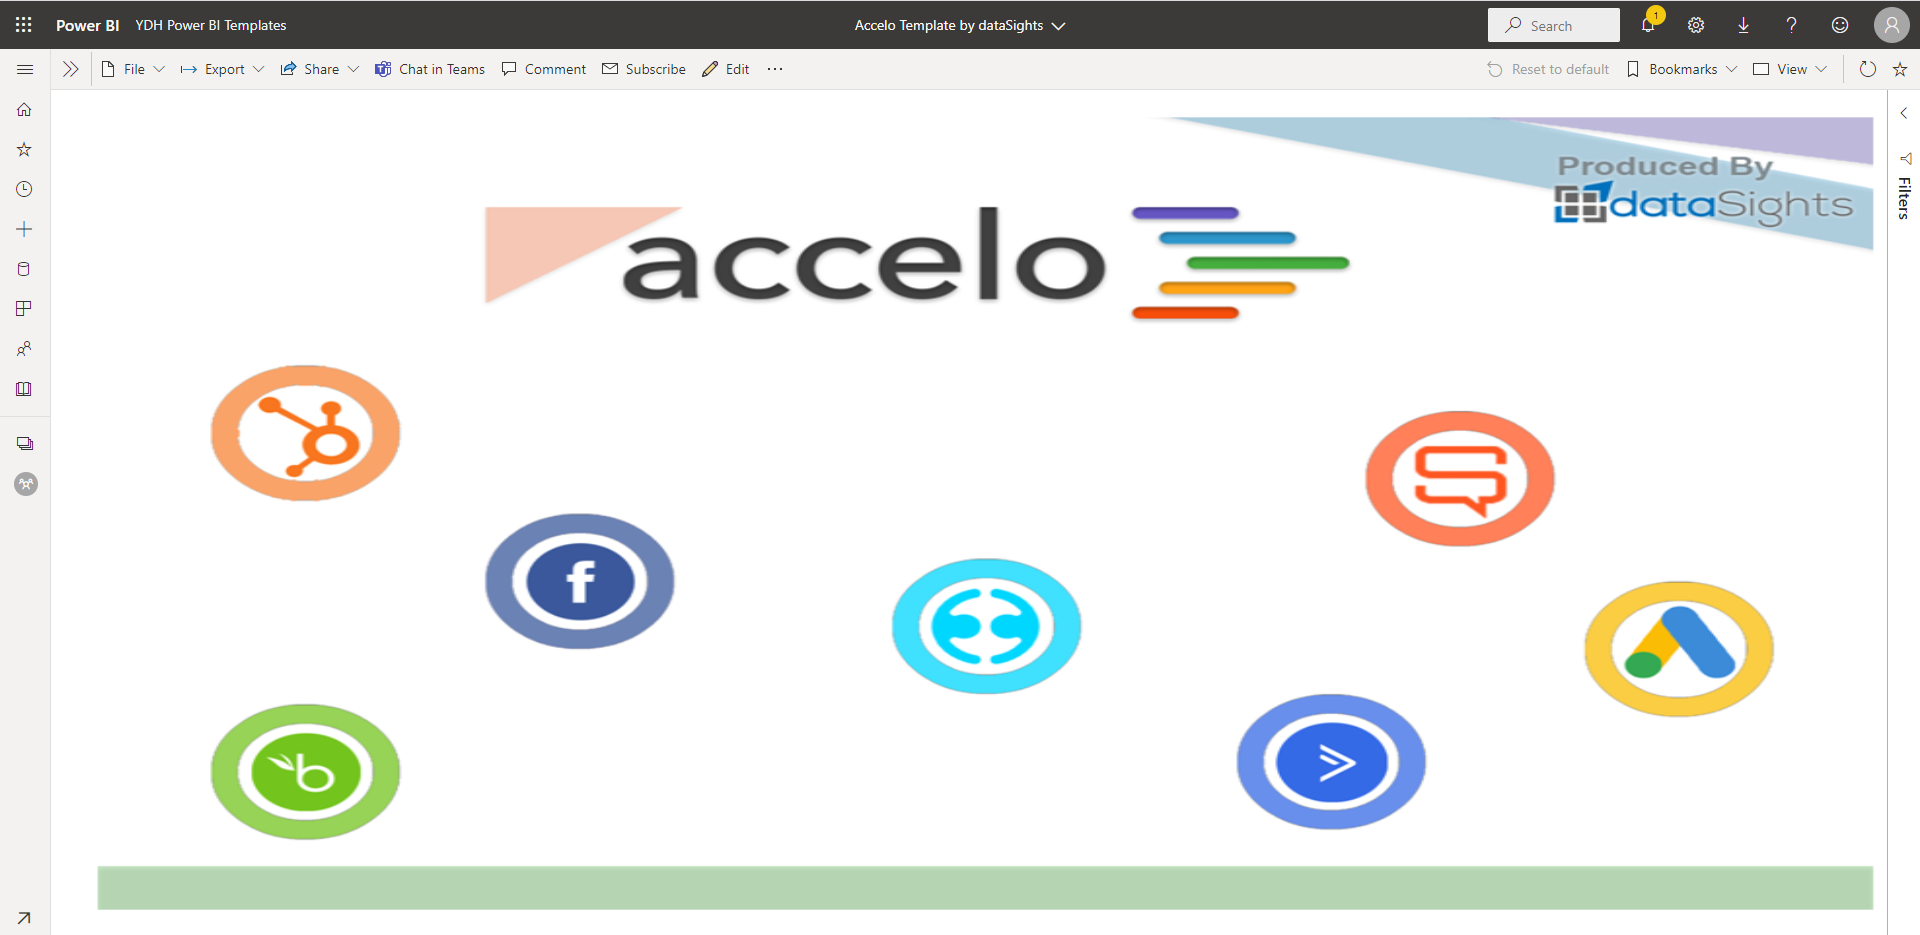 Accelo Build your own reports or let us build them for you